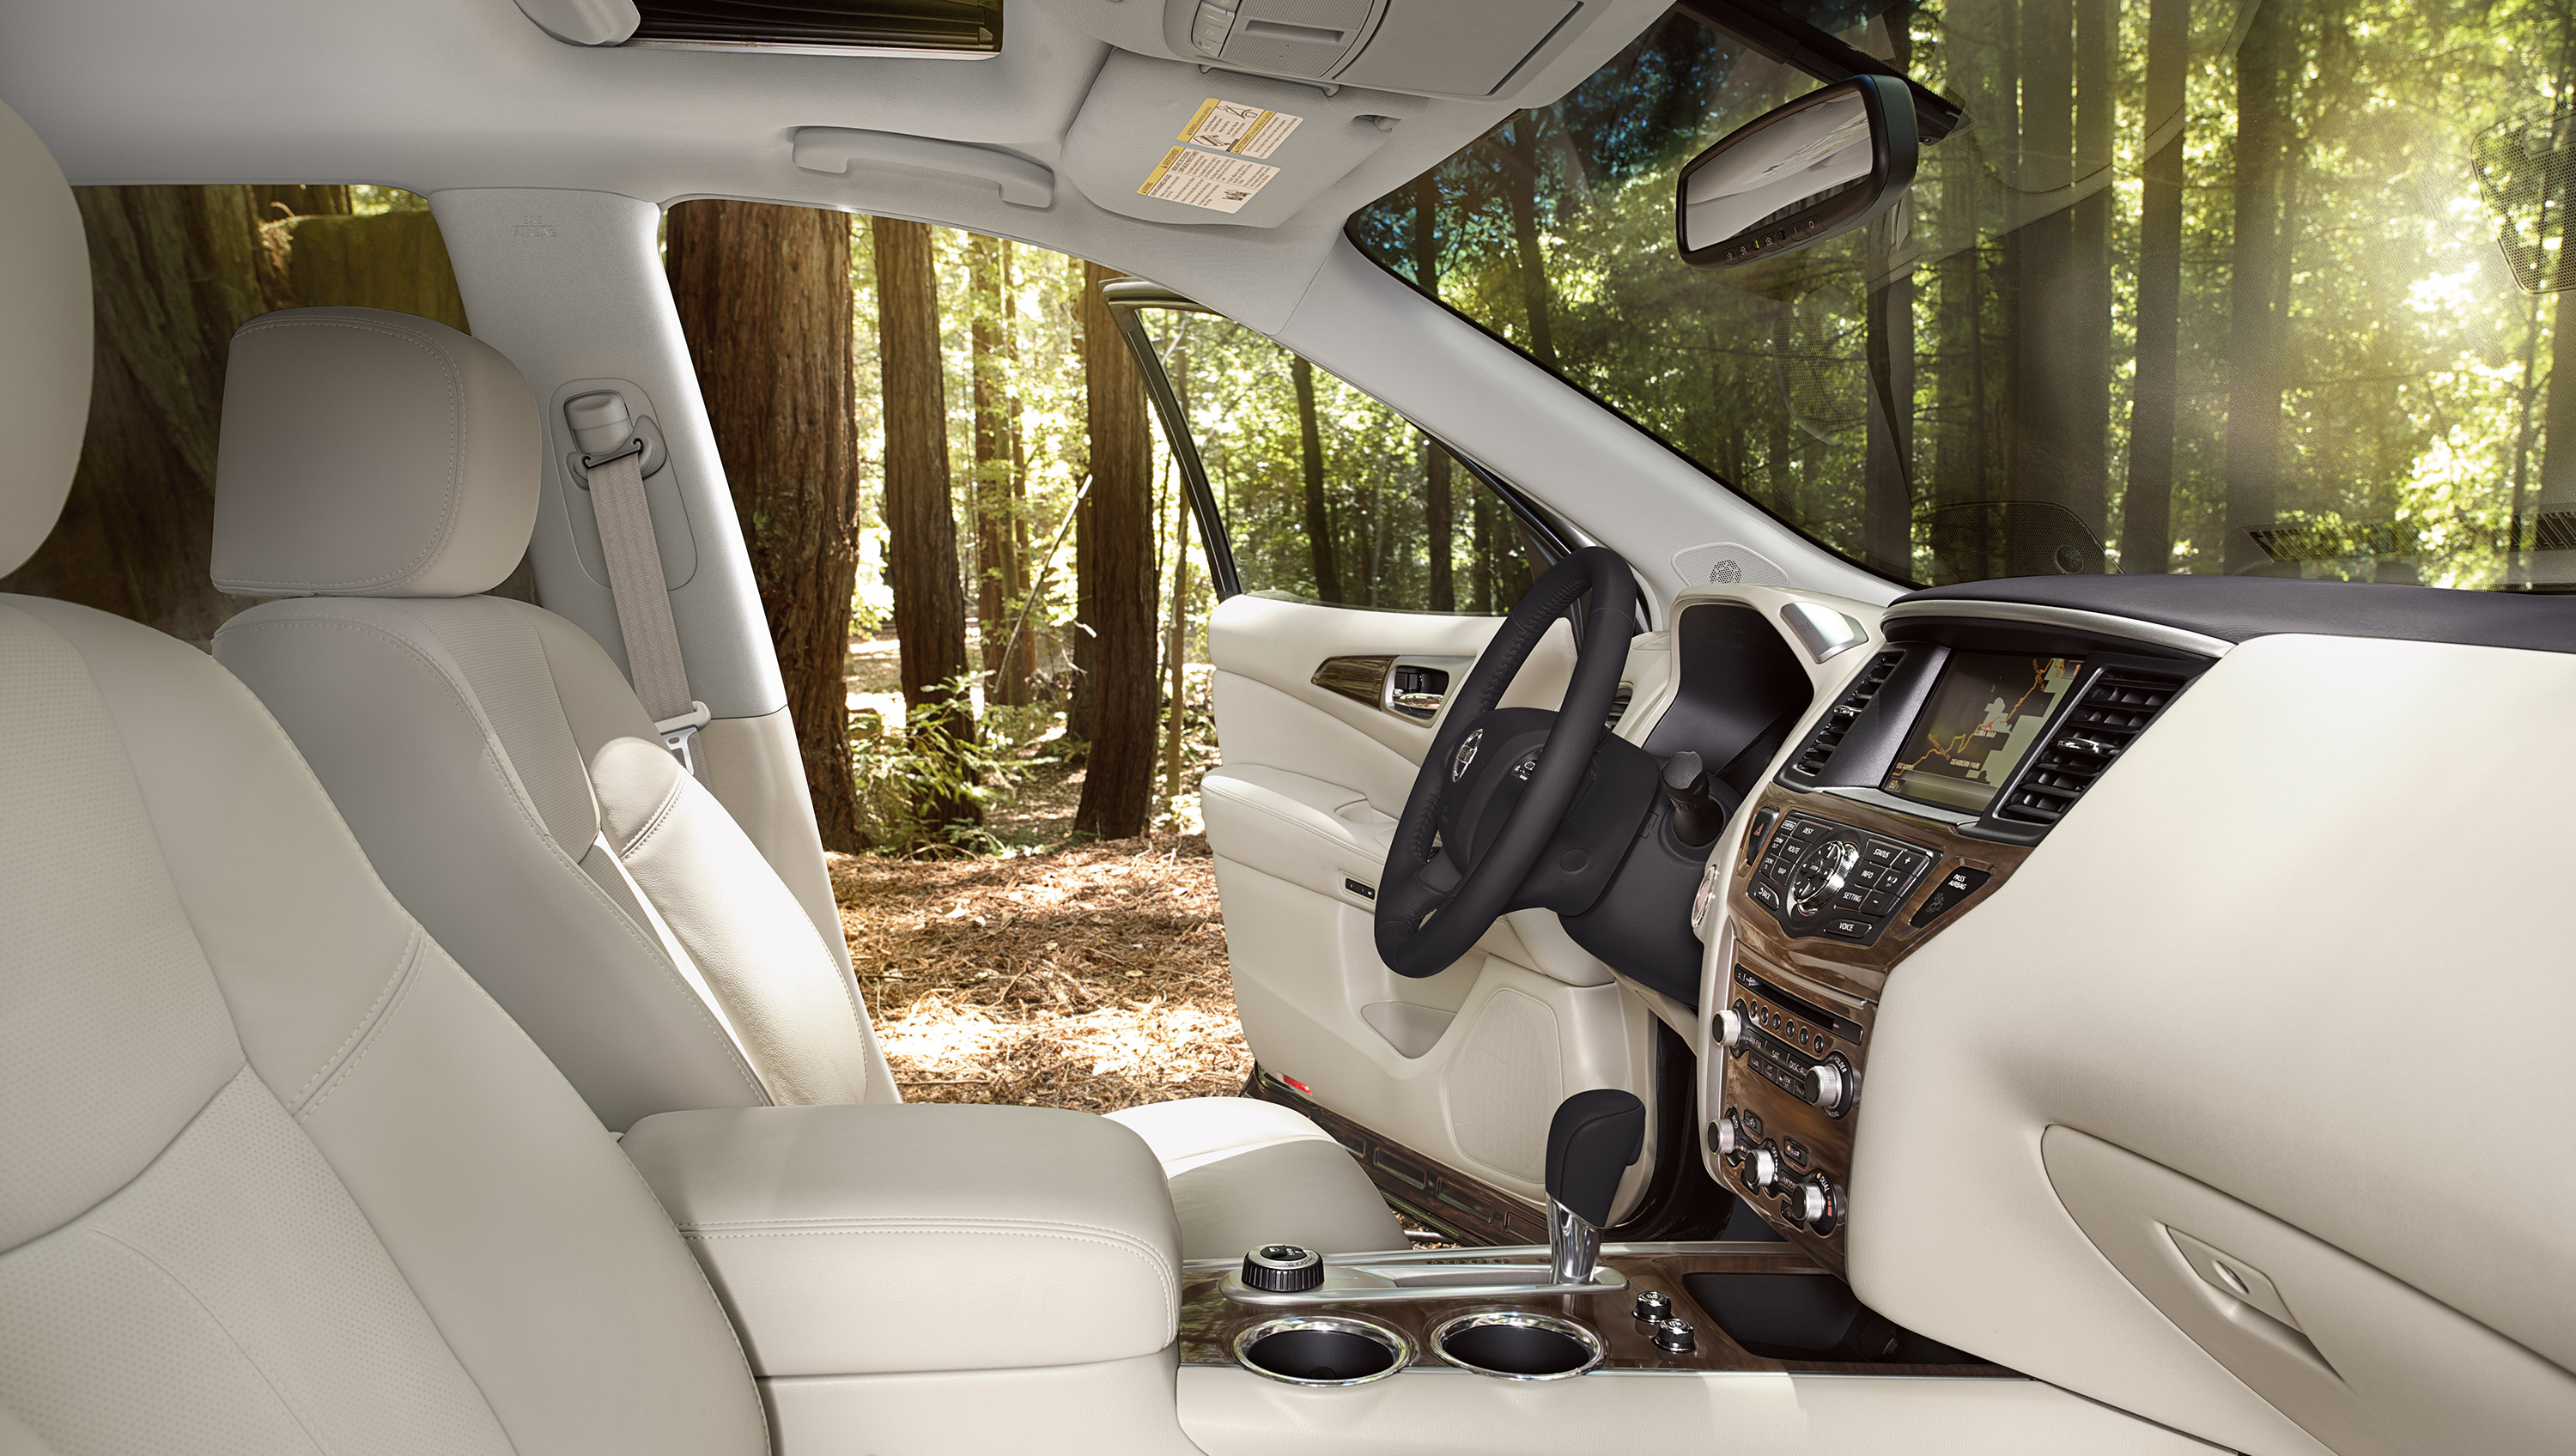 New Nissan Pathfinder Interior